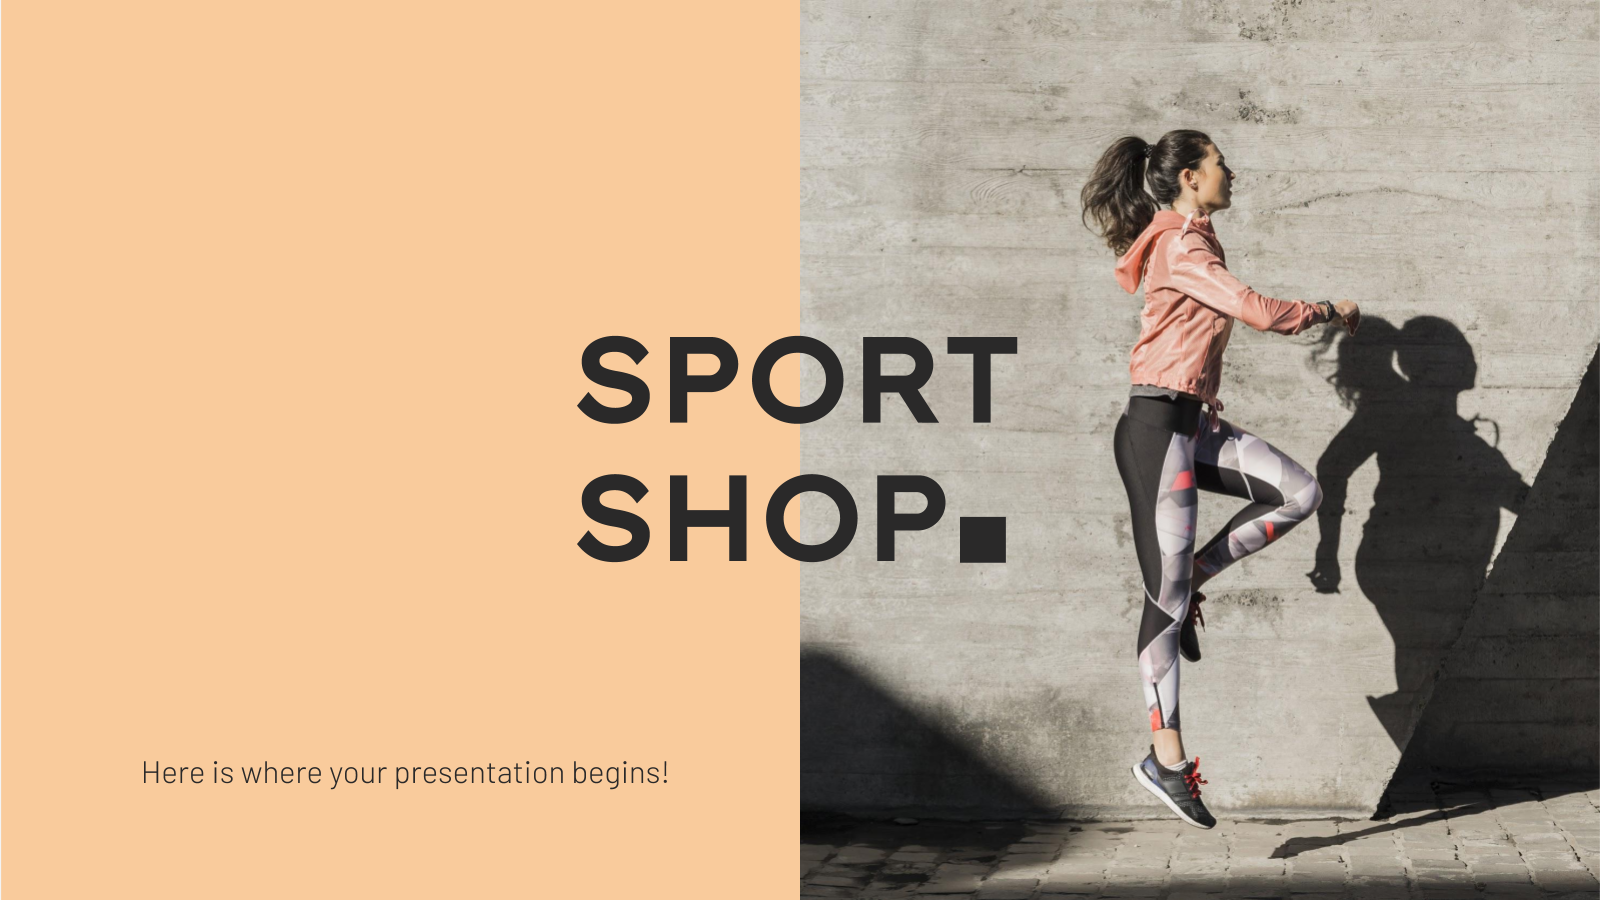 Sport Shop Business Plan presentation template